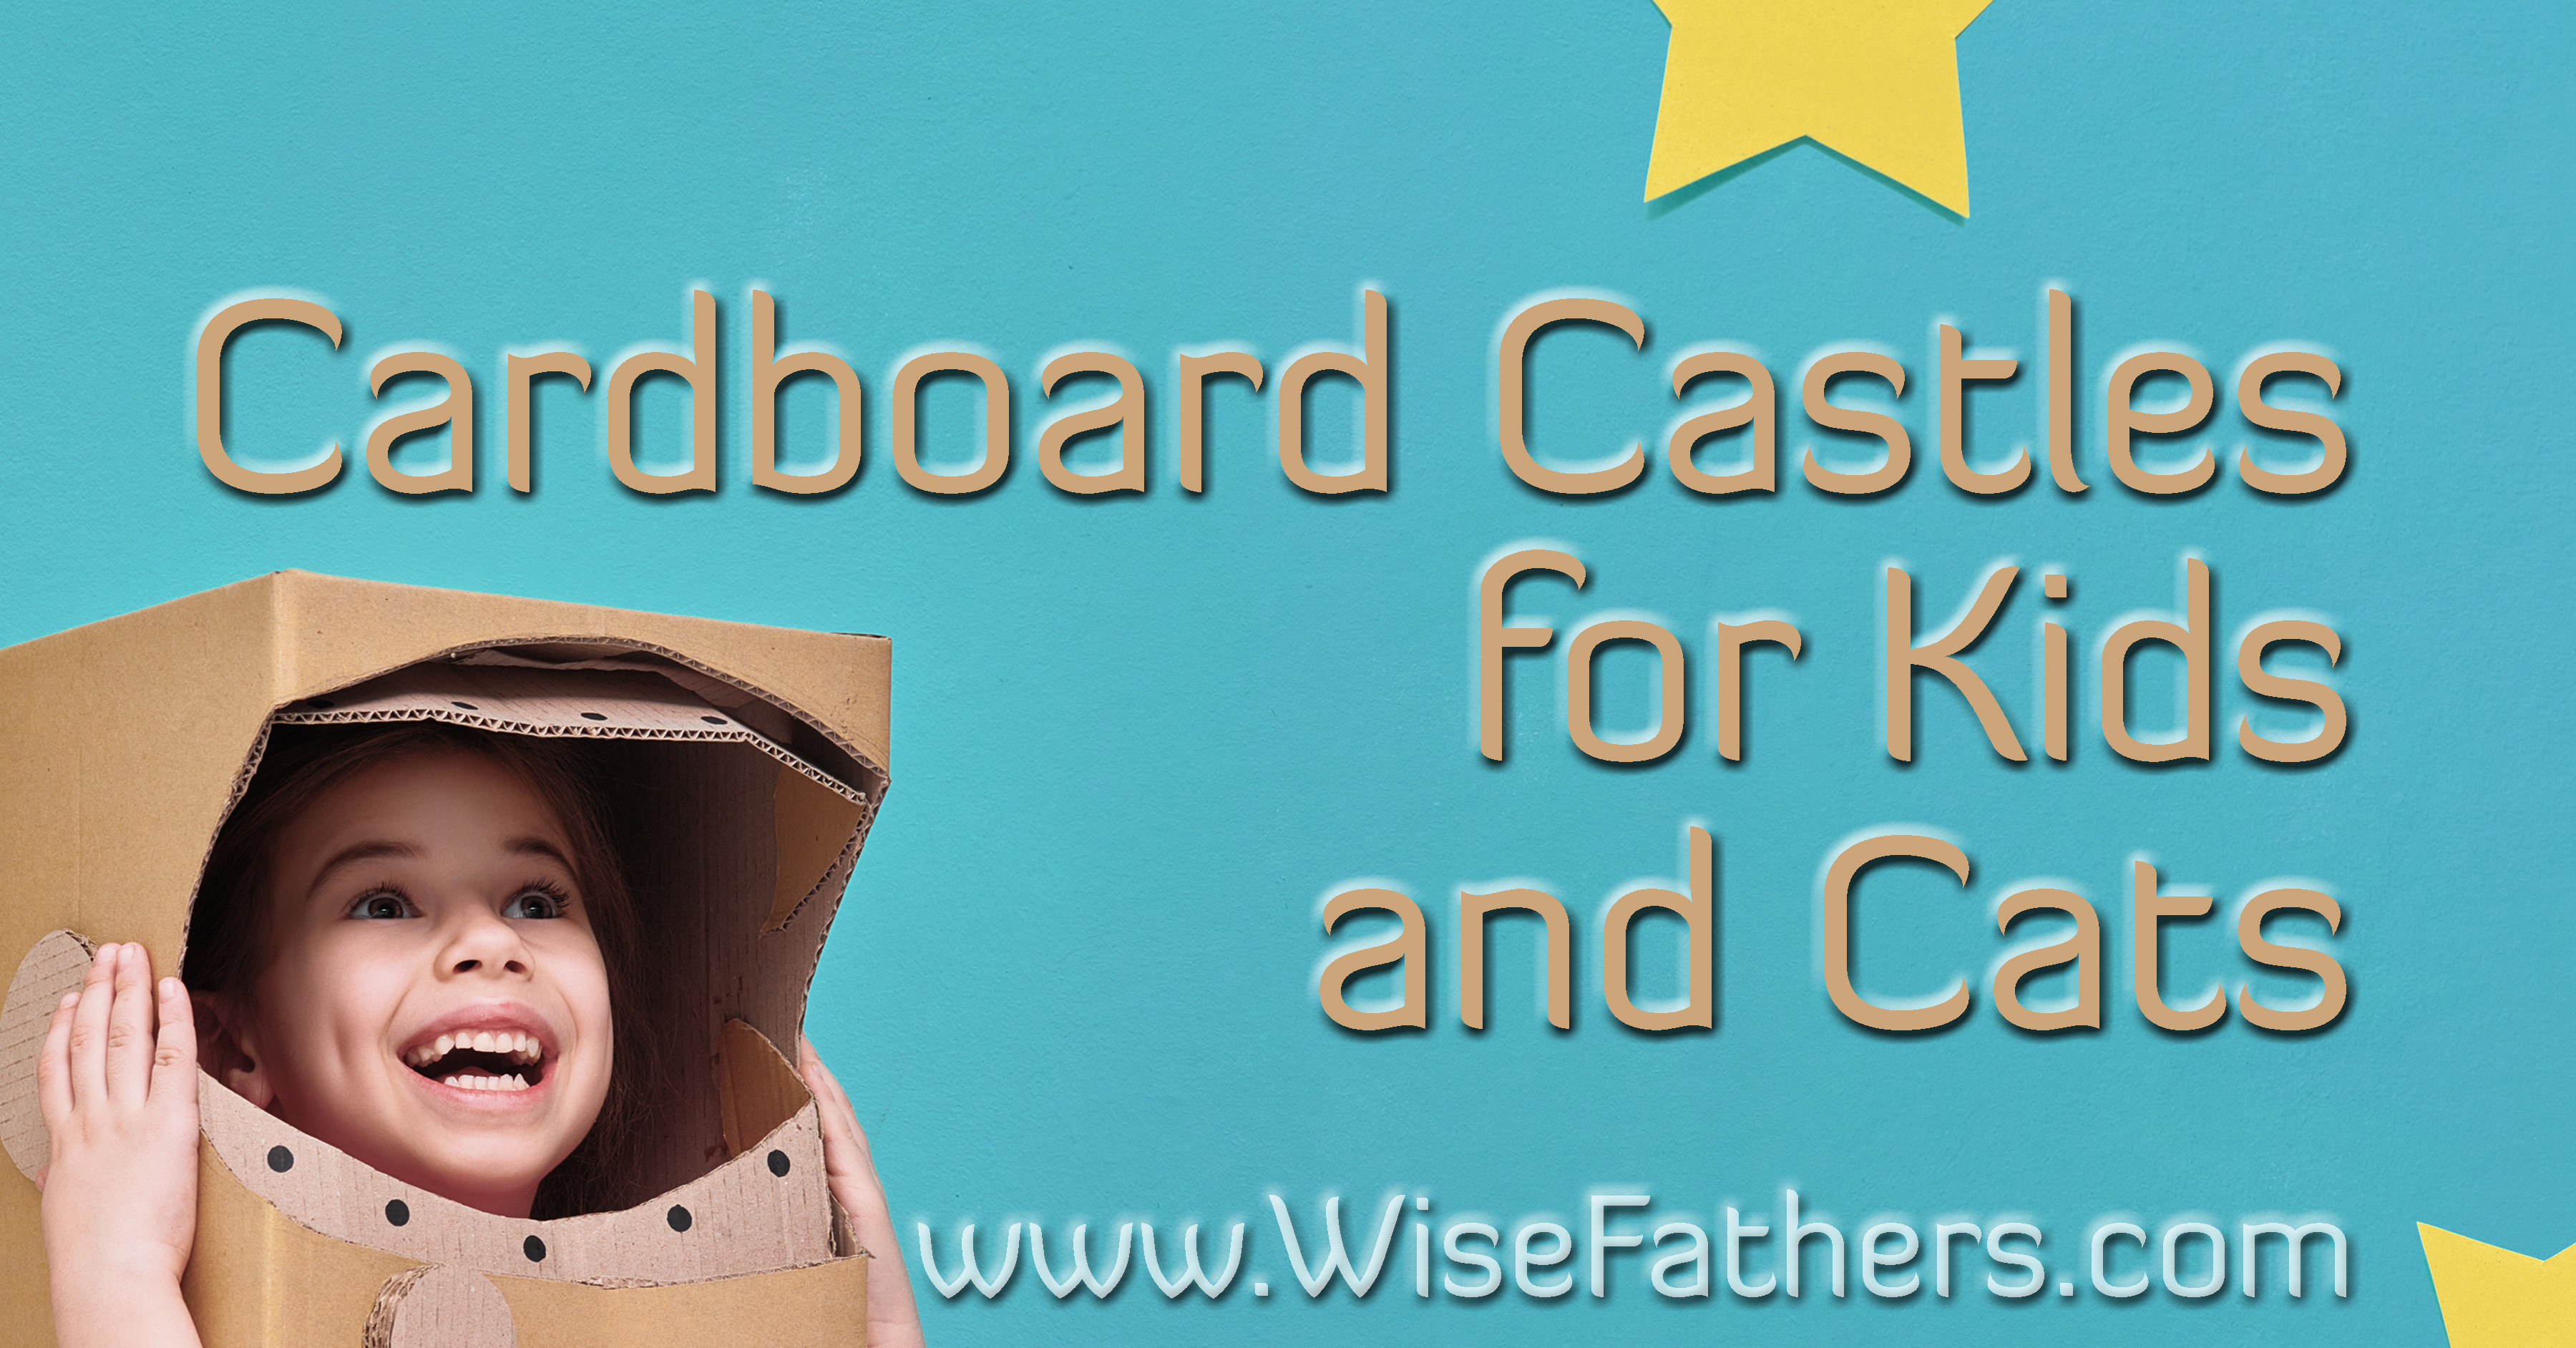 Cardboard Castles for Kids and Cats